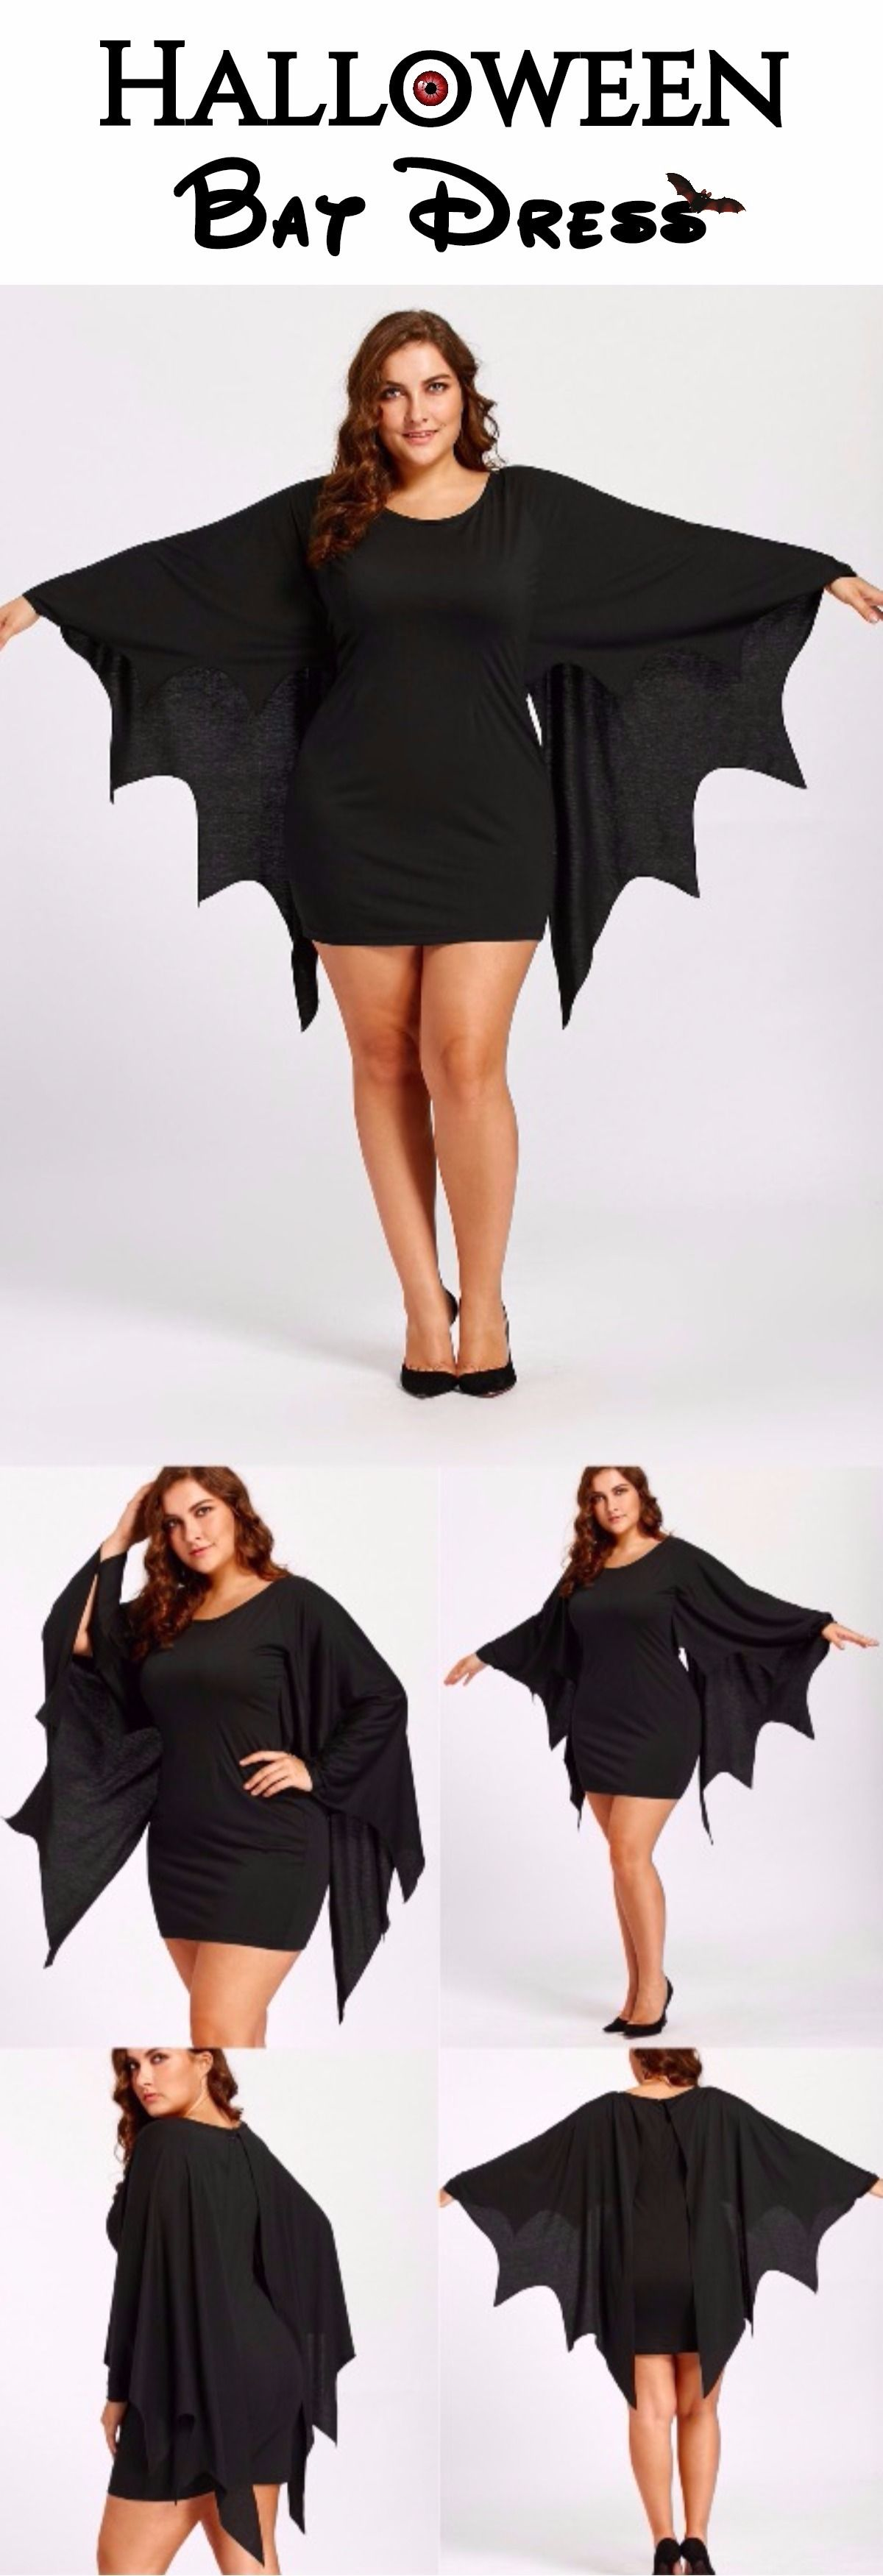 Plus Size Tunic Bat Wings Dress | Patrones de costura, Patrones y Blusas